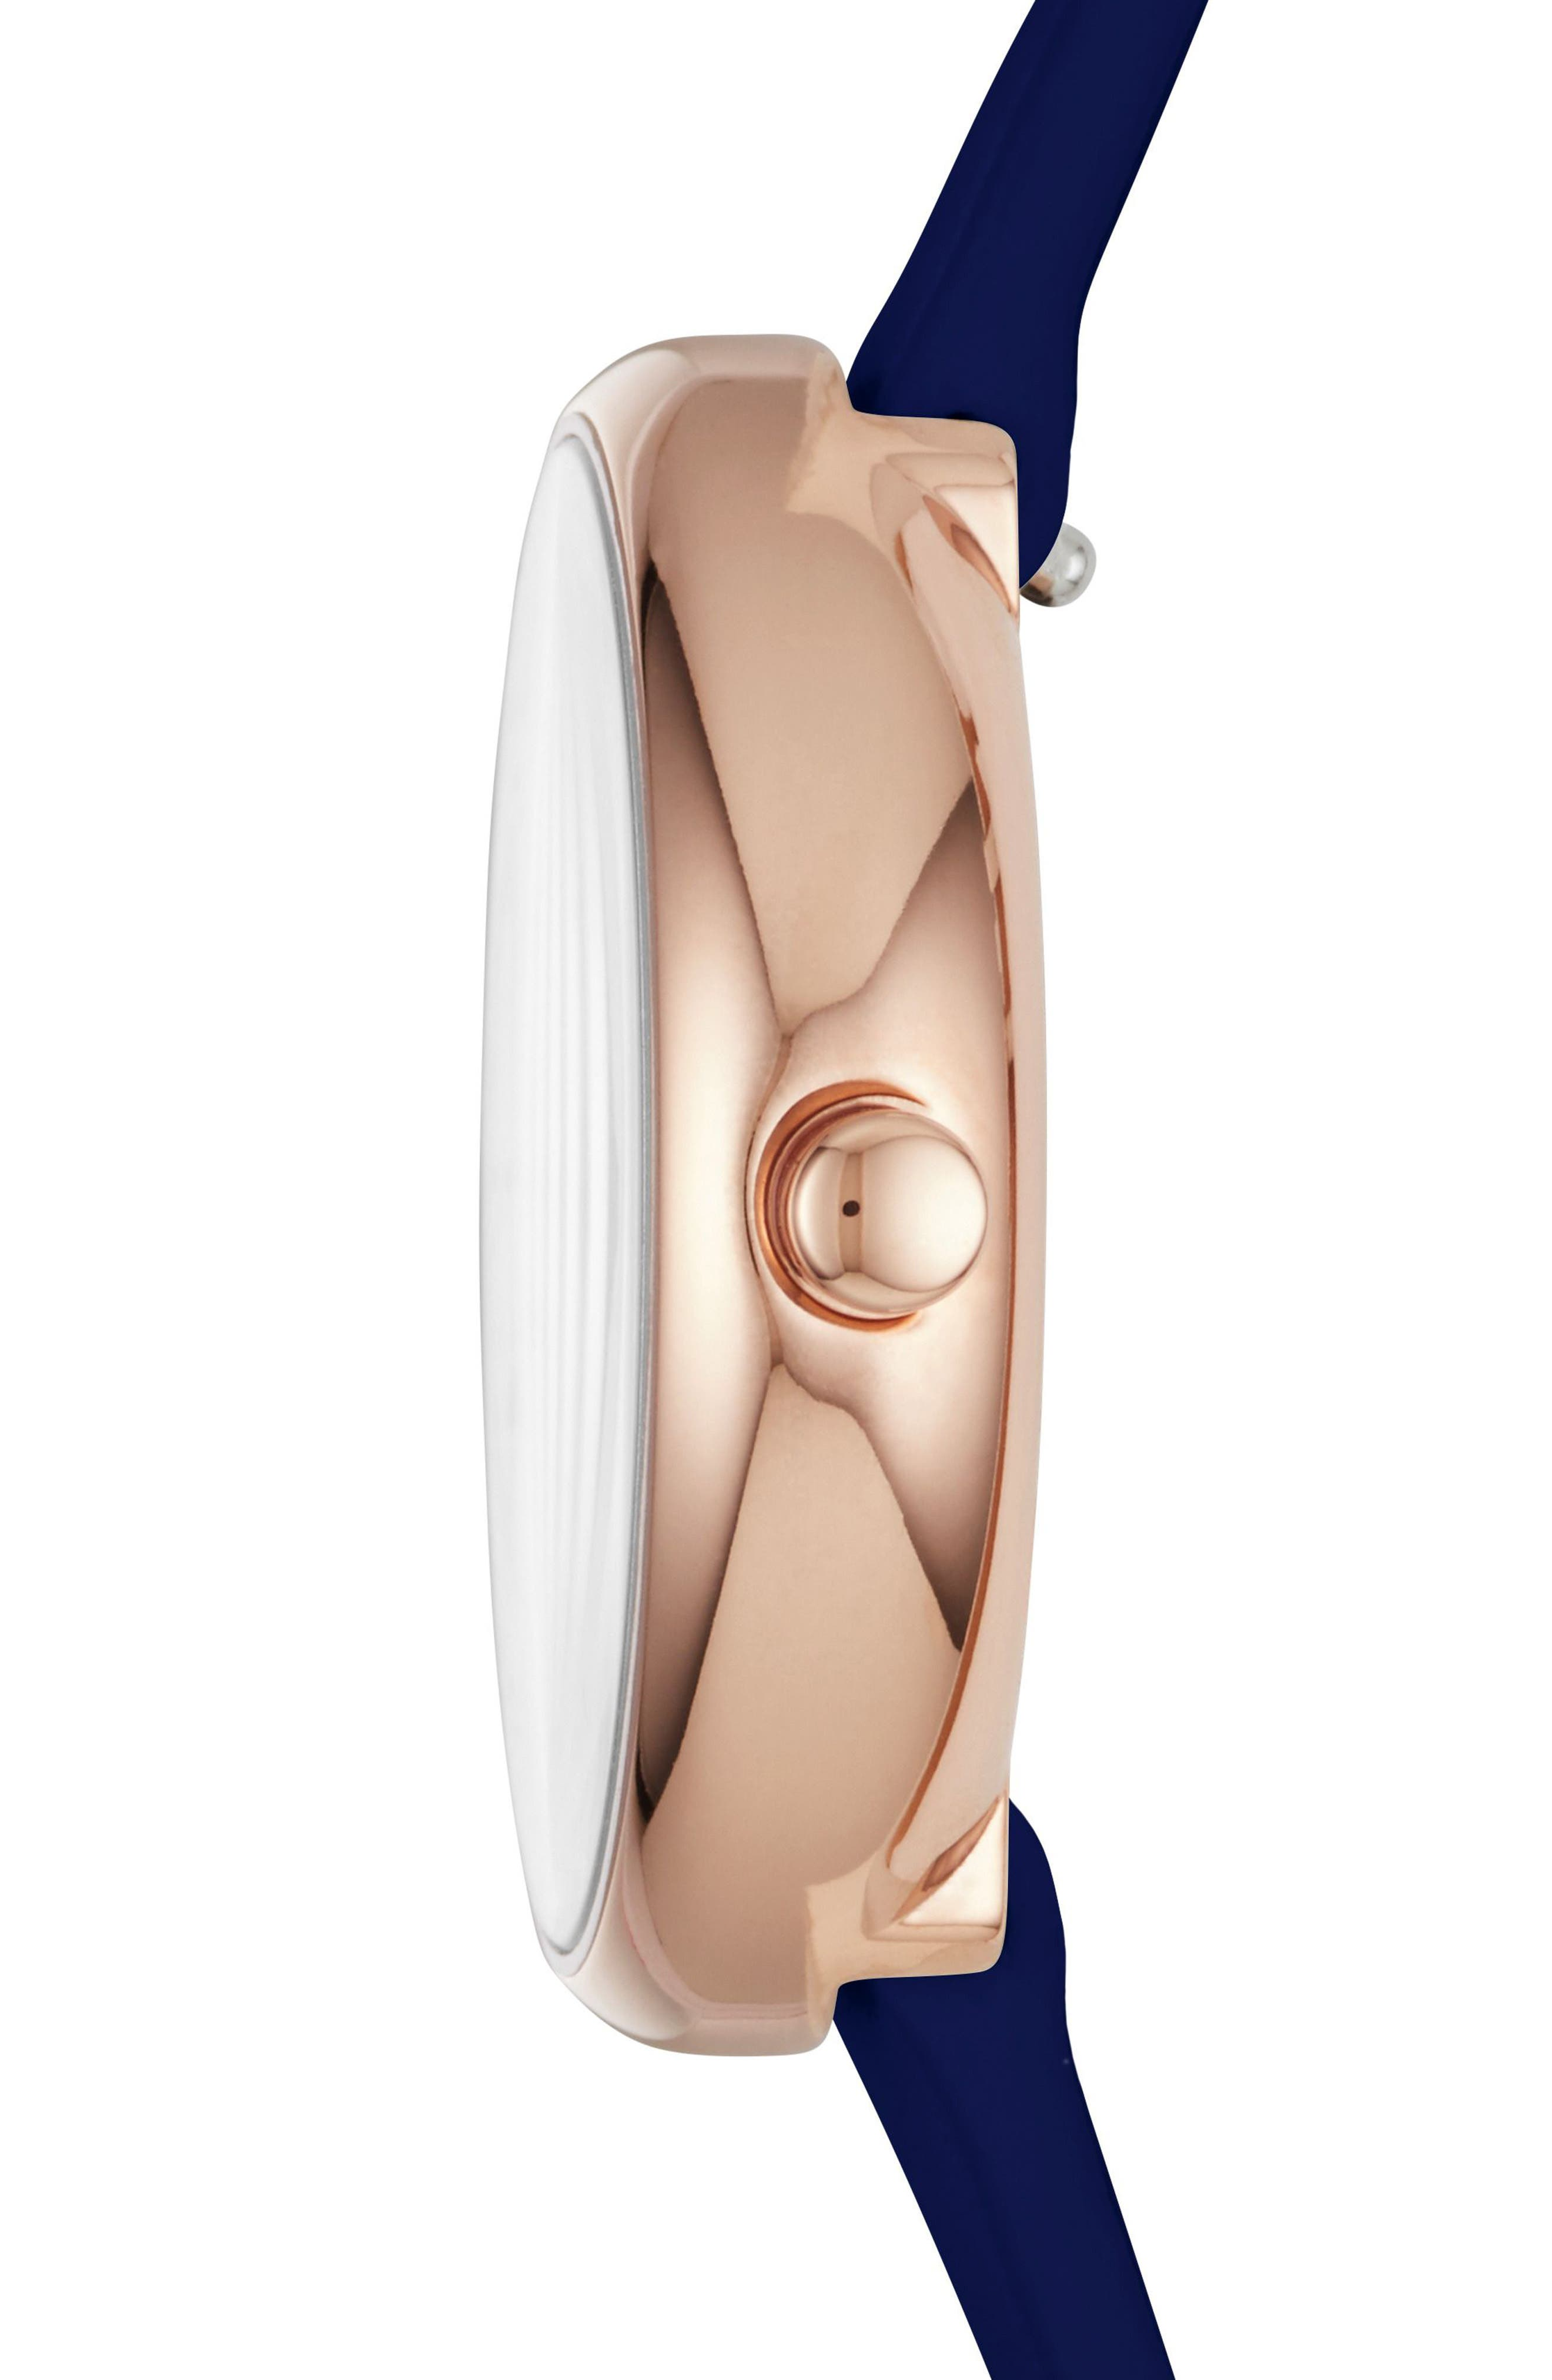 Signatur Leather Strap Watch, 30mm,                             Alternate thumbnail 2, color,                             Blue/ White/ Rose Gold